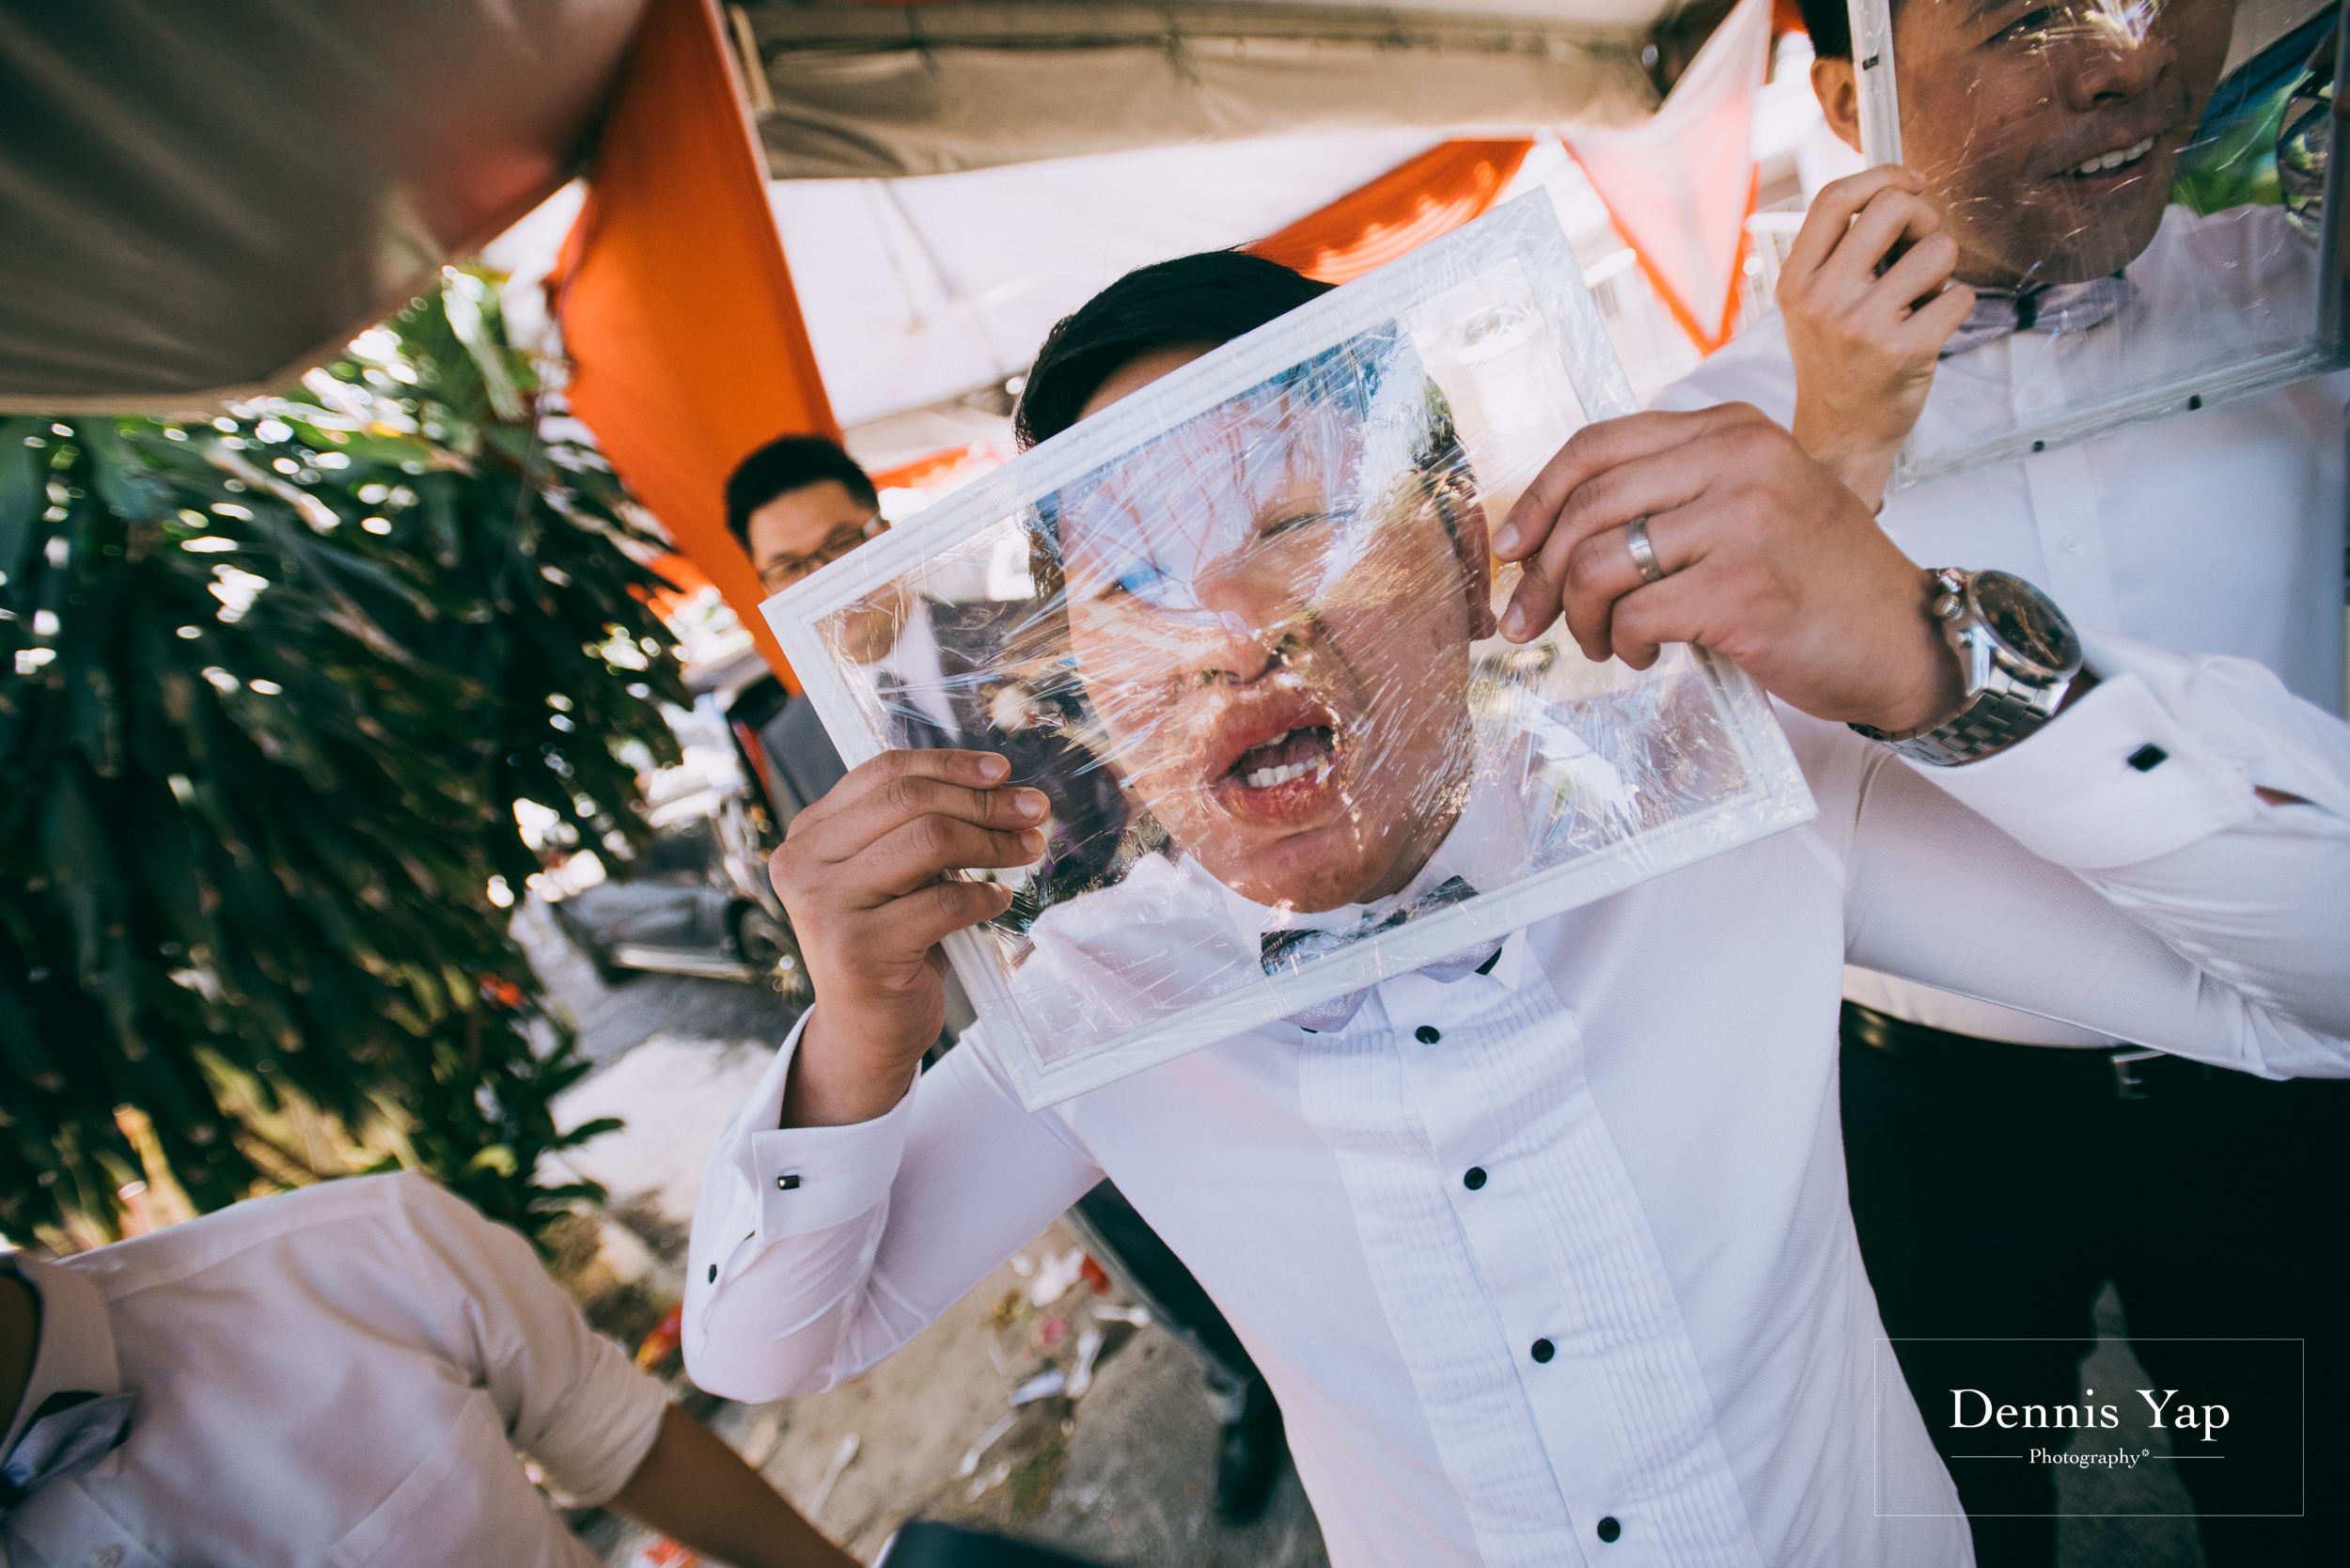 julian paige wedding gate crash malaysia dennis yap-2.jpg